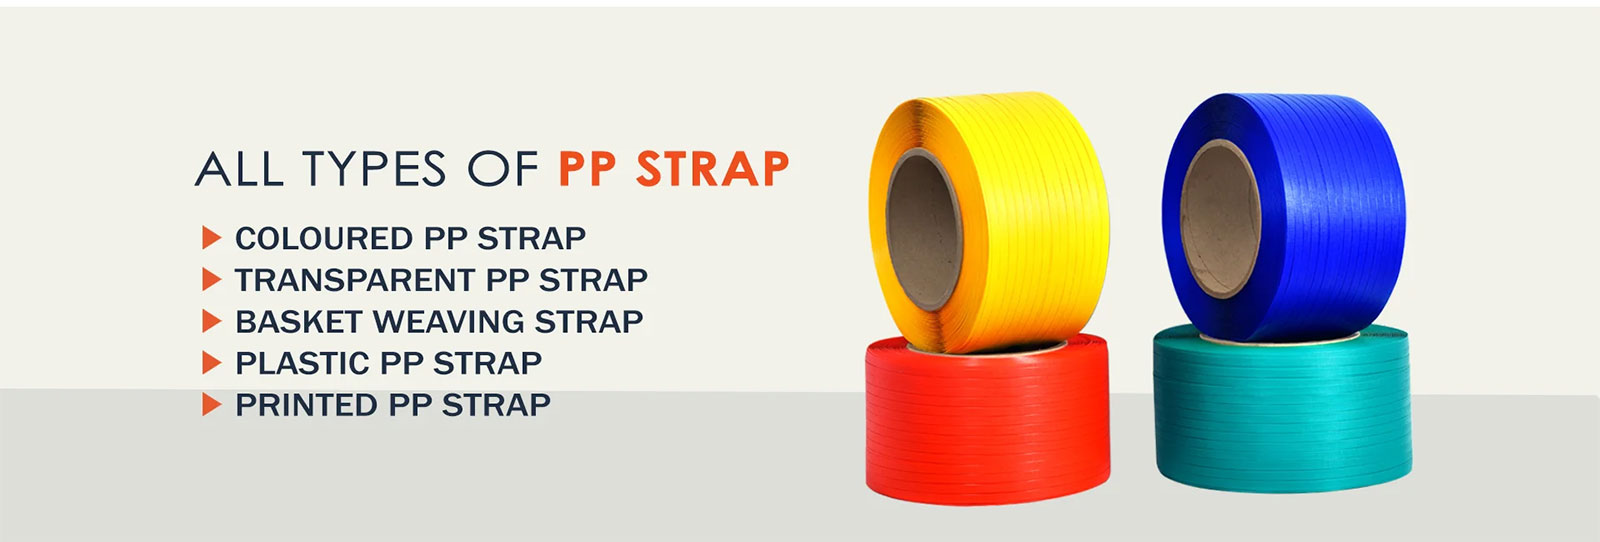 Coloured PP Strap, Transparent PP Strap, Basket Weaving Strap, Plastic PP Strap, Printed PP Strap, Manufacturer, Supplier, Ahmedabad